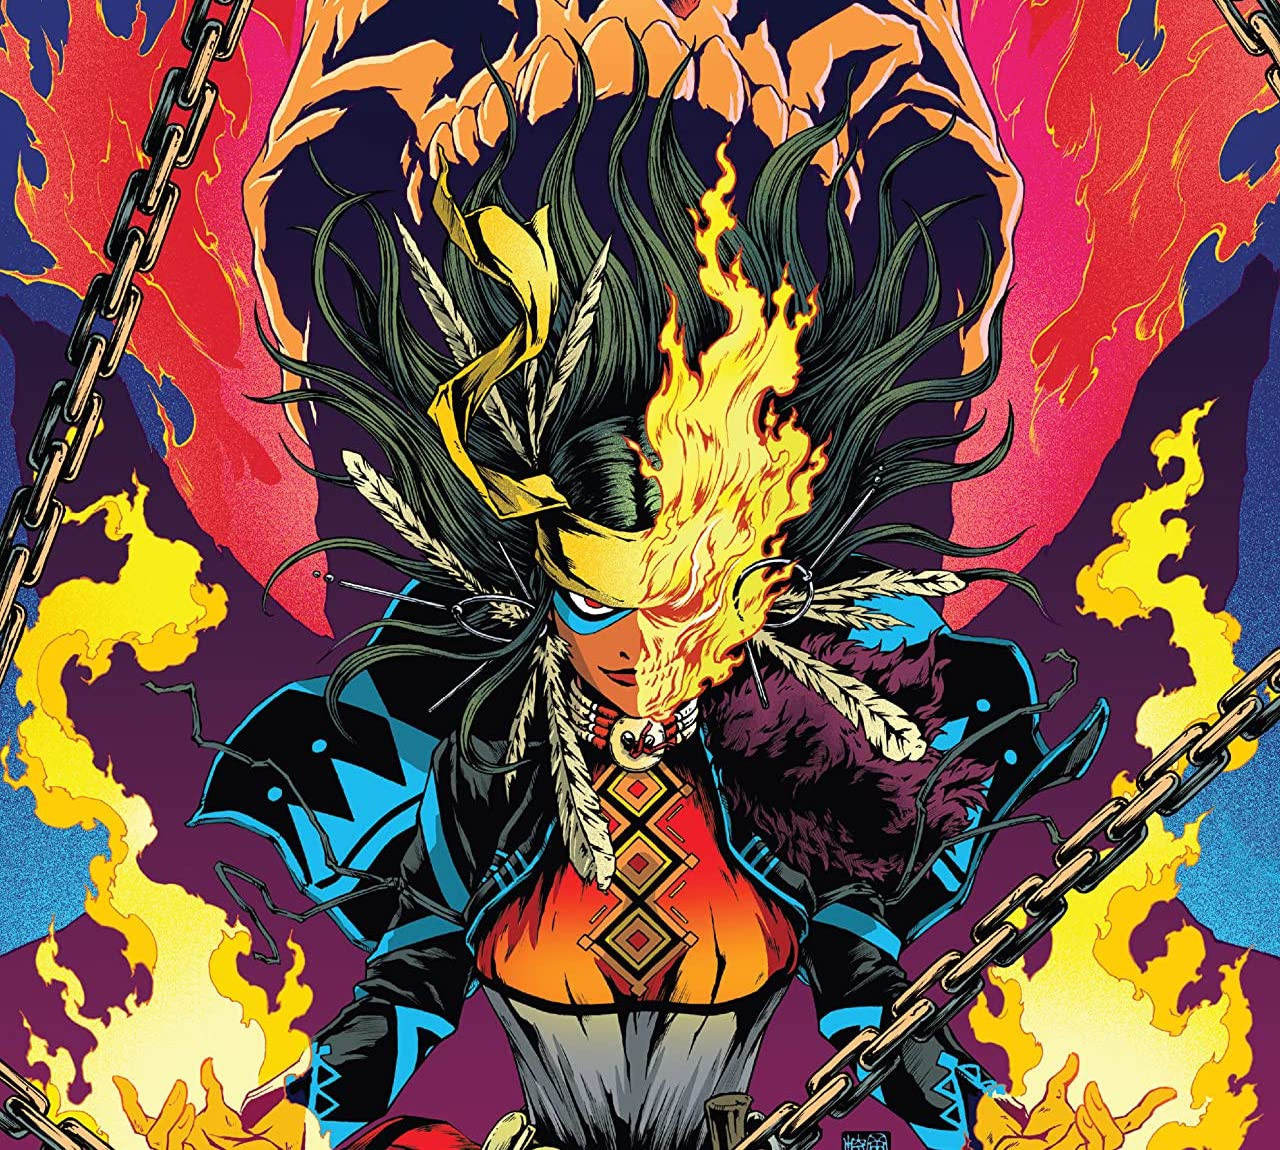 'Spirits of Vengeance: Spirit Rider' #1 is a must read for Ghost Rider and Demon Rider fans